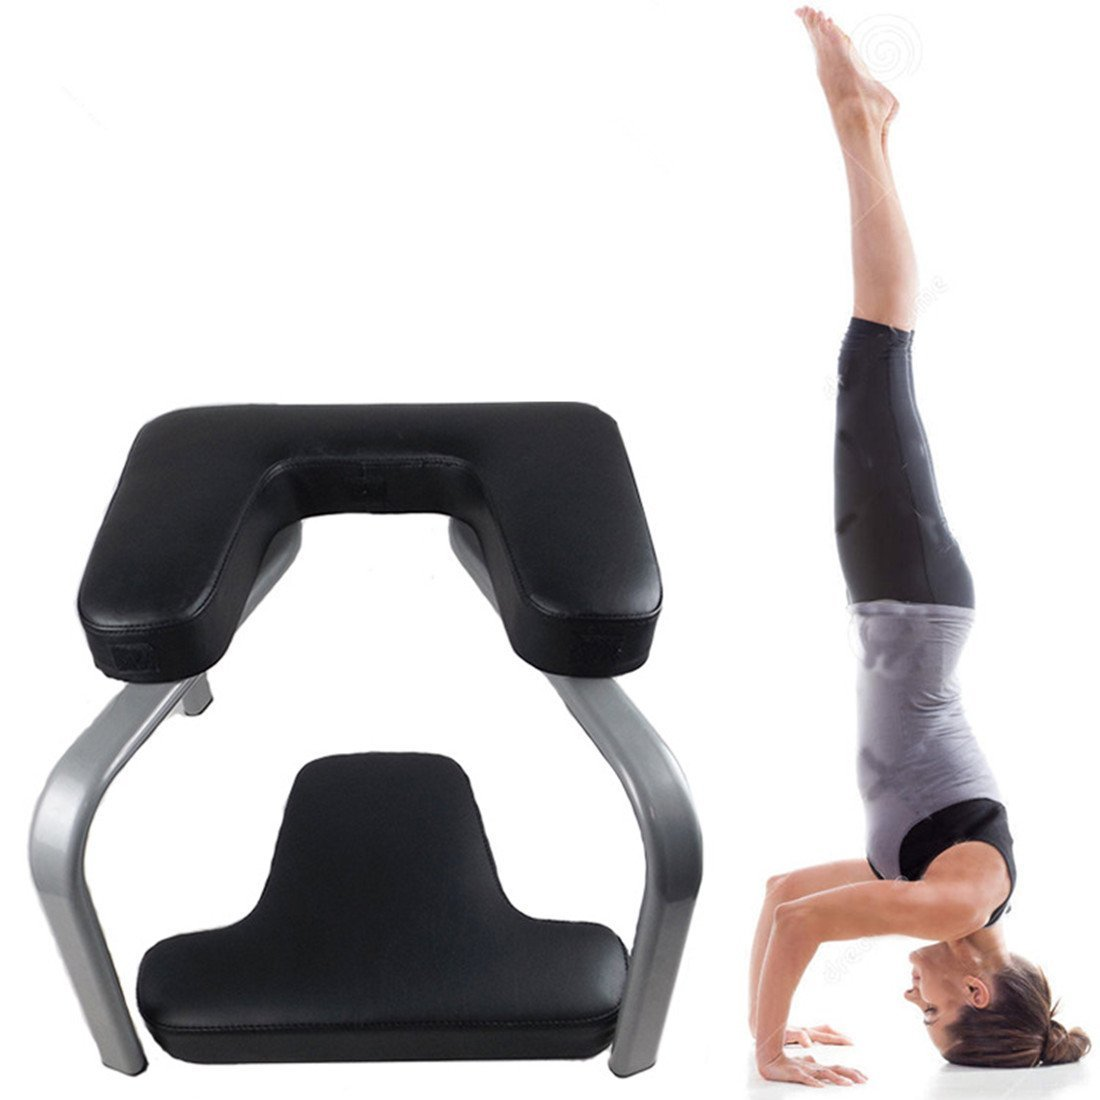 Ranbo yoga headstand exercise bench/body lift inverted training/fitness chair and Inversion workout the balanced body headstand bench … by Ranbo